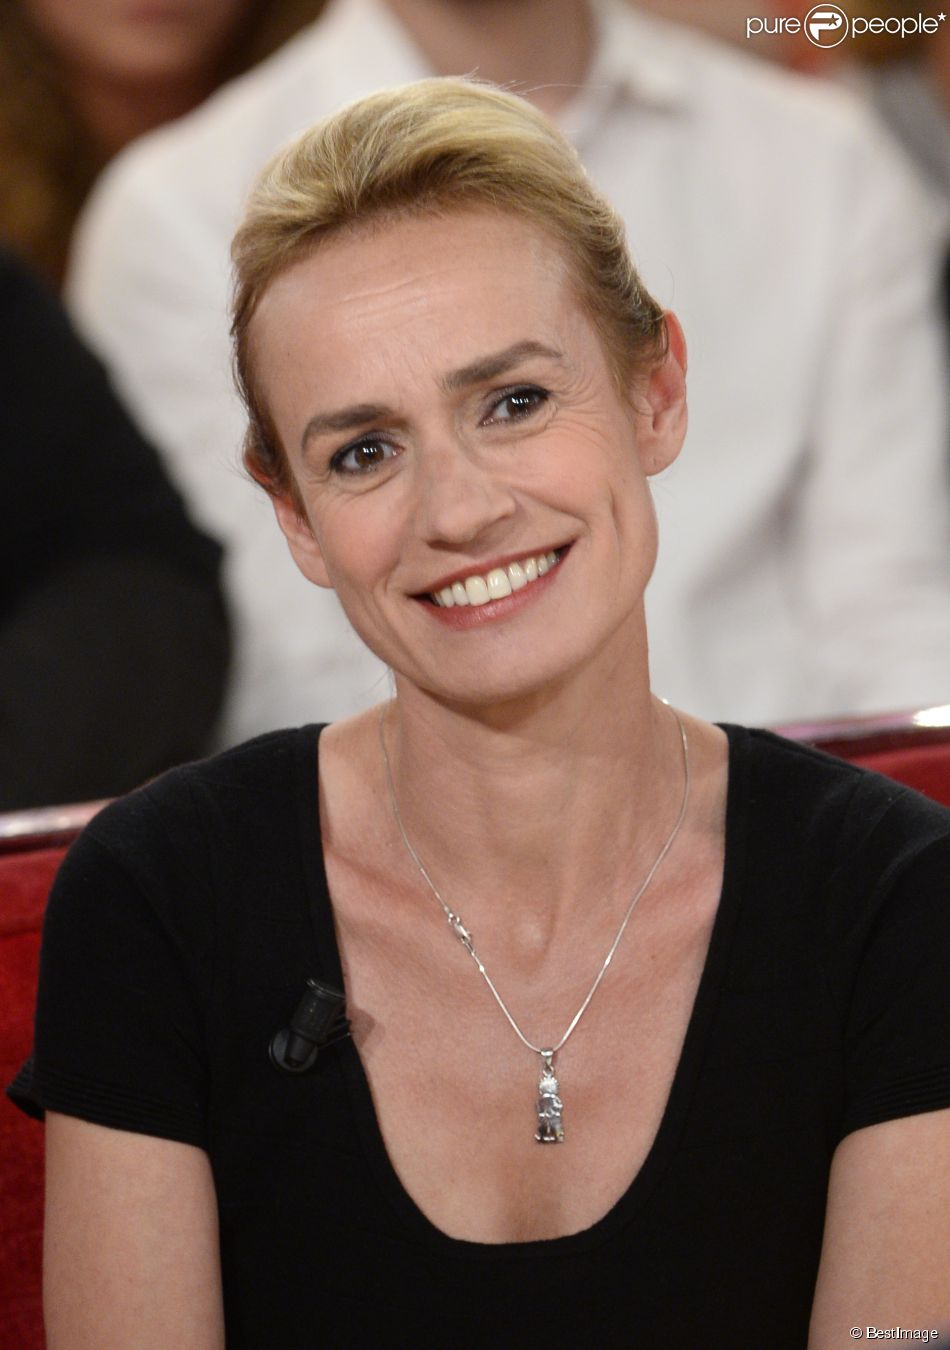 sandrine bonnaire monsieur hiresandrine bonnaire monsieur hire, sandrine bonnaire interview, sandrine bonnaire wiki, sandrine bonnaire, sandrine bonnaire filmographie, sandrine bonnaire biographie, sandrine bonnaire youtube, sandrine bonnaire aggression, sandrine bonnaire police, sandrine bonnaire et jacques higelin, sandrine bonnaire mari, sandrine bonnaire william hurt, sandrine bonnaire jacques higelin, sandrine bonnaire films, sandrine bonnaire polisse, sandrine bonnaire nu, sandrine bonnaire age, sandrine bonnaire autisme, sandrine bonnaire guillaume laurant, sandrine bonnaire hot